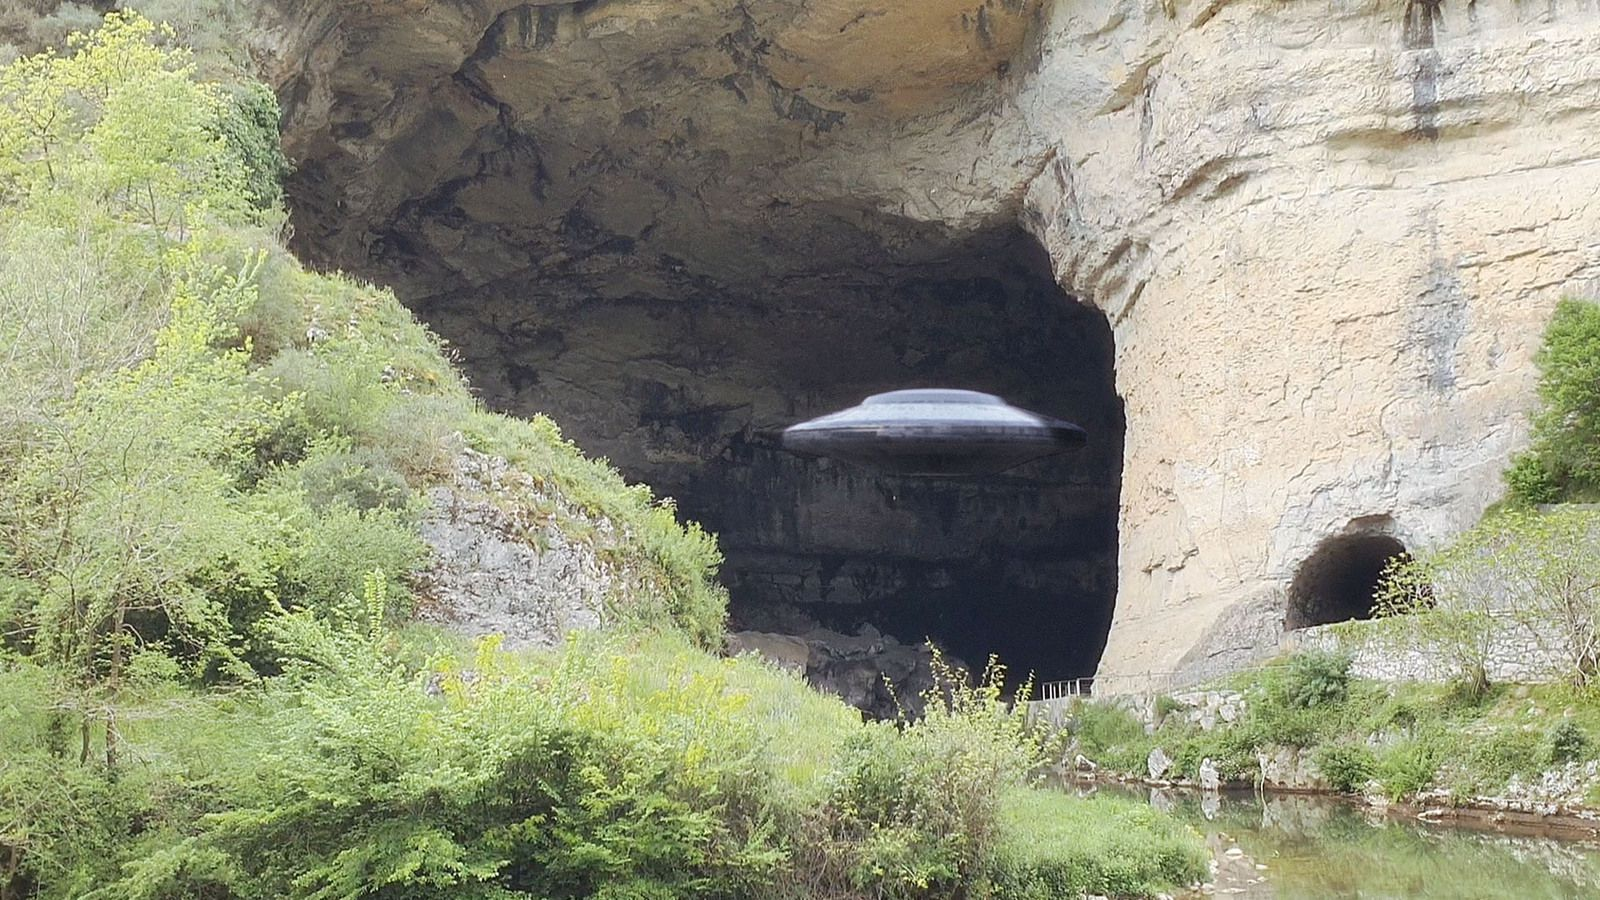 👽 UFO Sighting : Disc UFO Entering Huge Cave in Pyrenees Mountains - Country Spain